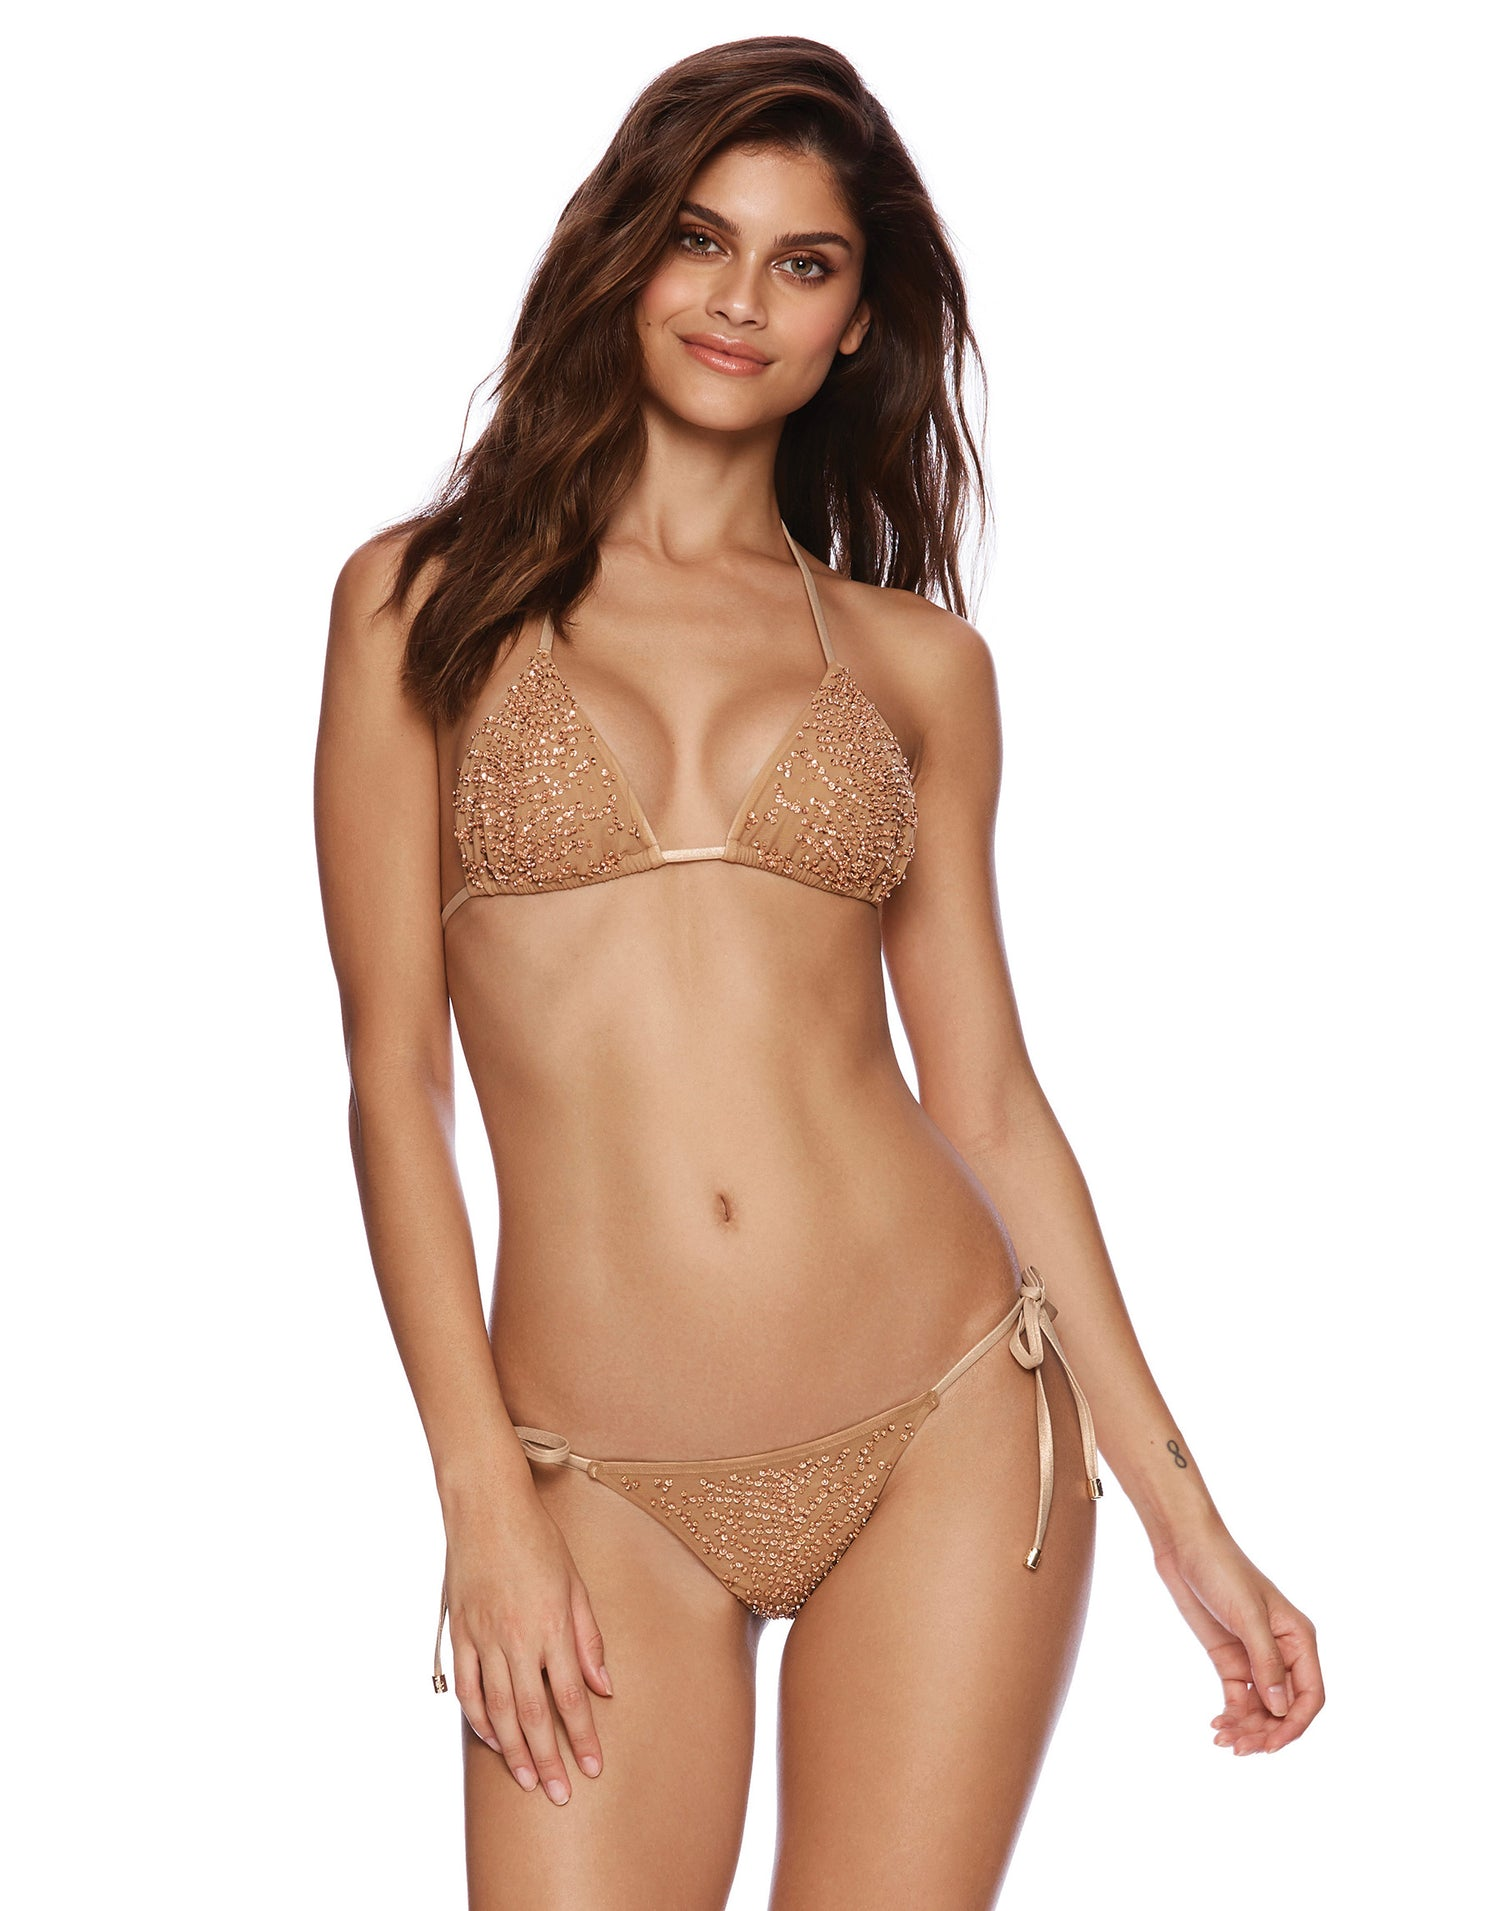 Nala Triangle Bikini Top in Rose Gold with Beads and Sequins - Alternate Front View